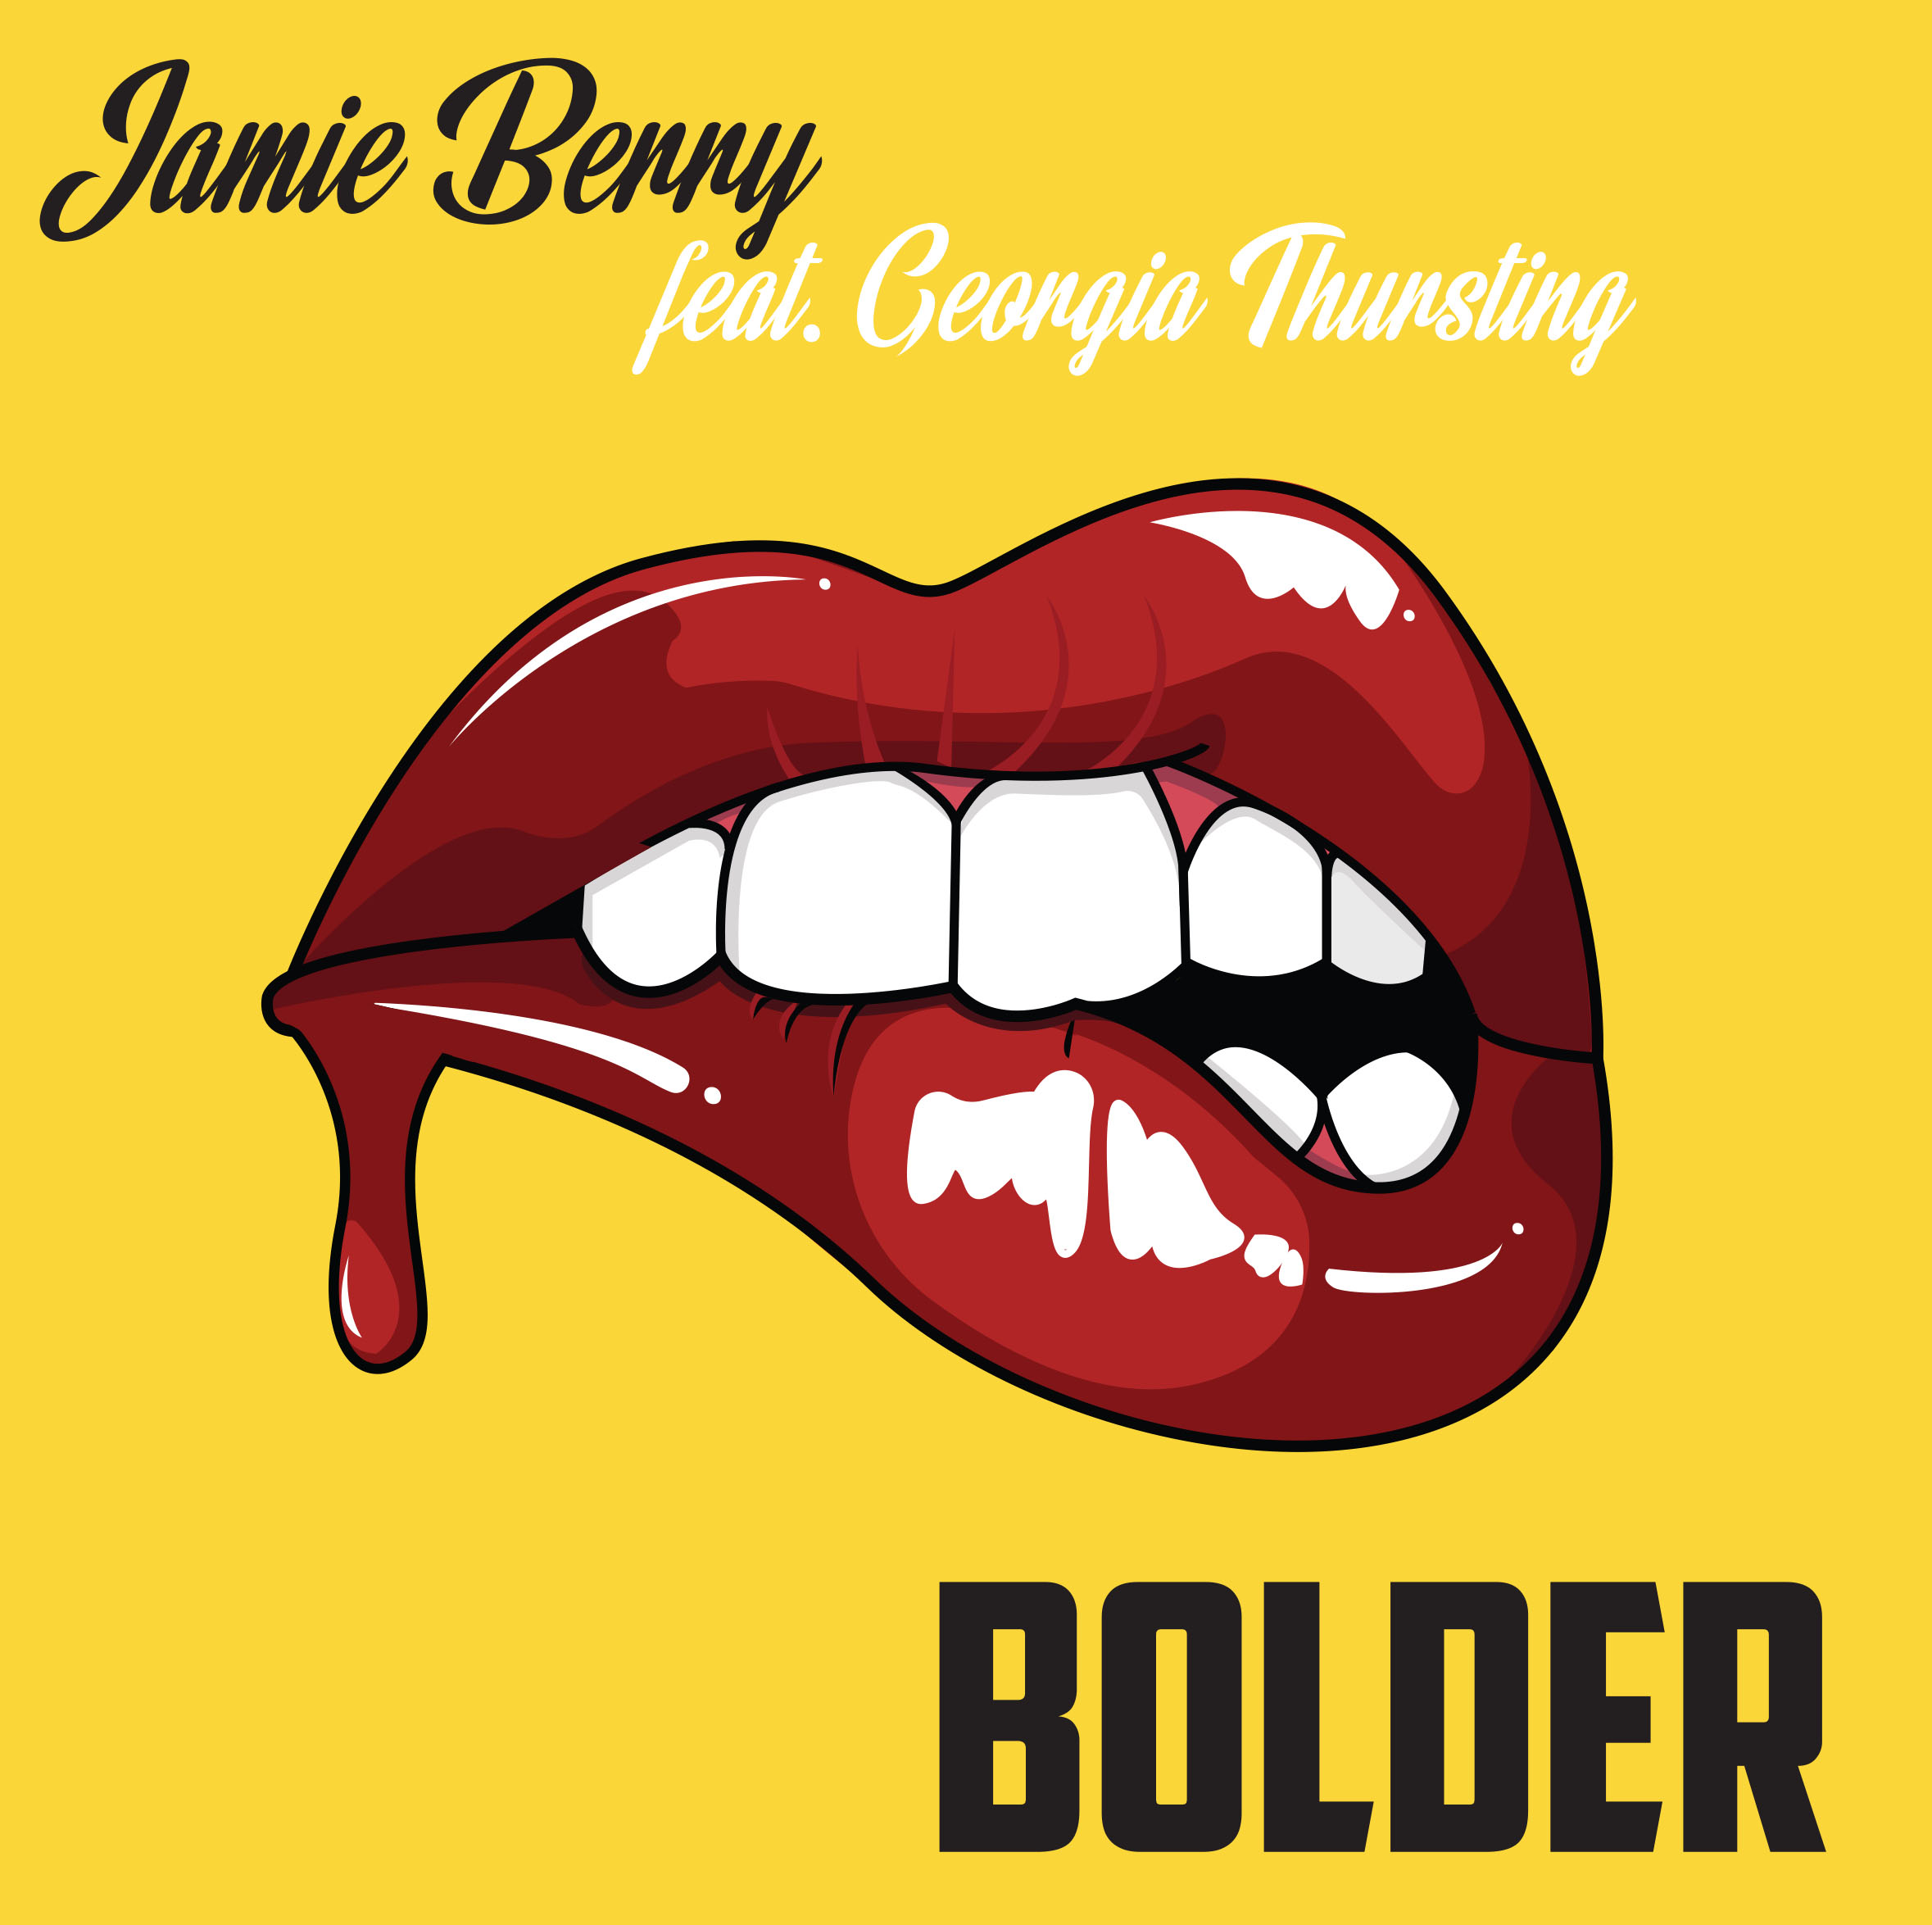 Artwork jamie berry bolder yellow